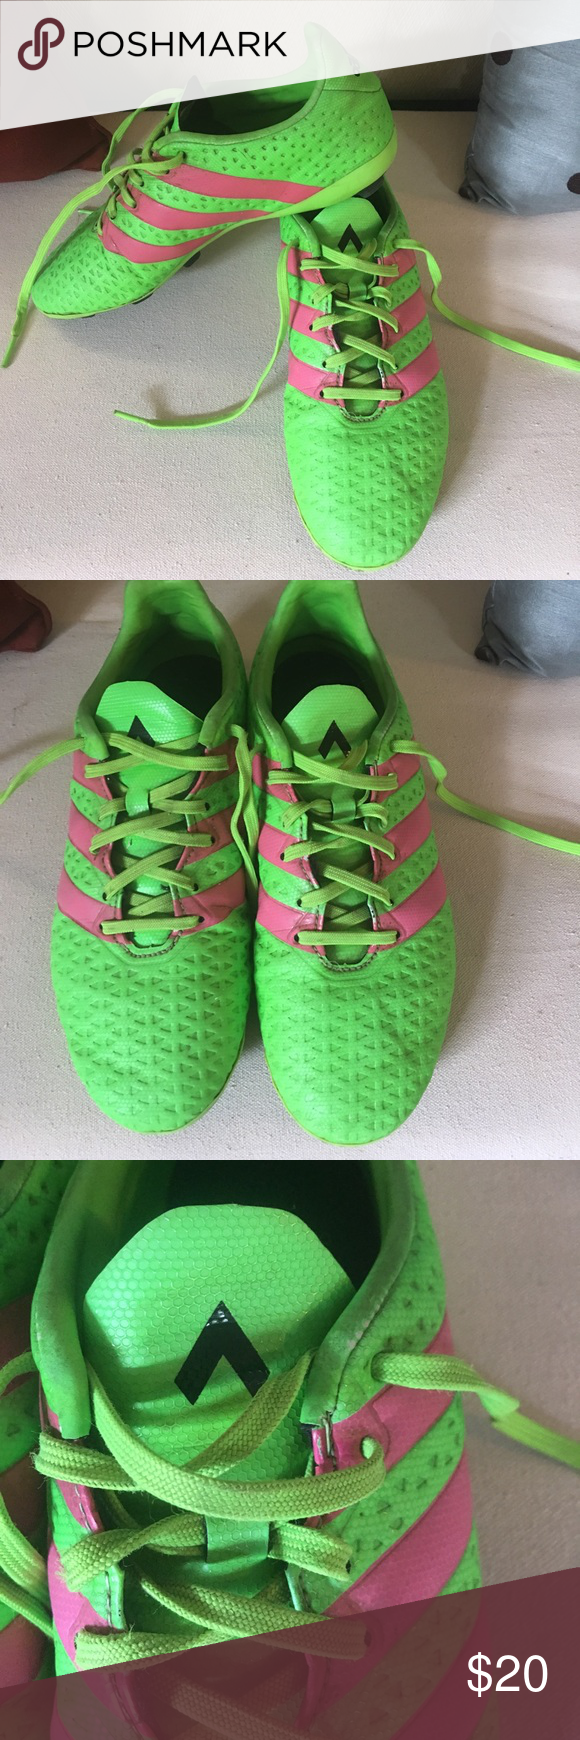 70af6075e1f0 Boys size 5 Adidas soccer cleats Used size 5 Adidas Ace 16.3 soccer cleats. Bright  fluorescent green with hot pick stripes. Only used for one soccer season.  ...